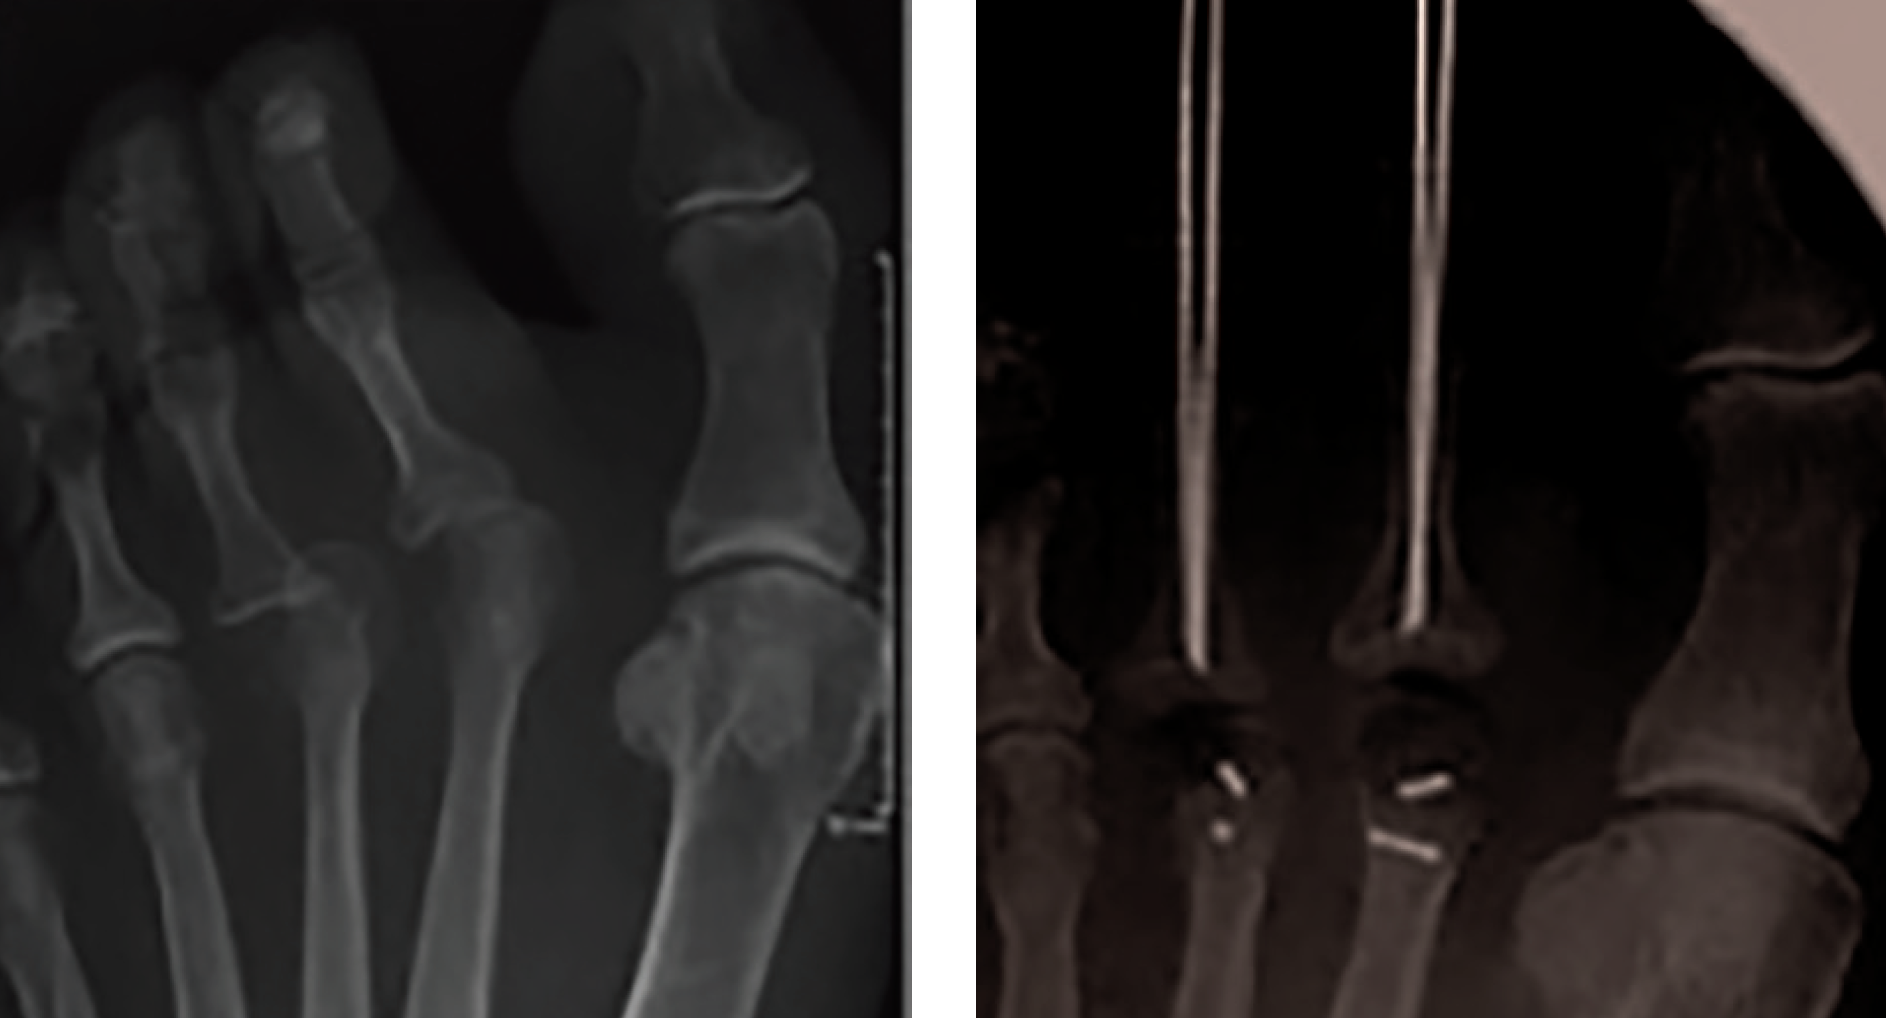 These radiographic images (from left to right) show pre- and postoperative images of proximal interphalangeal fusion, shortening metatarsal osteotomies and soft tissue reconstruction involving lesser MPJ dislocation. Maintaining normal digital alignment in the short-term and long-term remains a challenge with hammertoe repair.